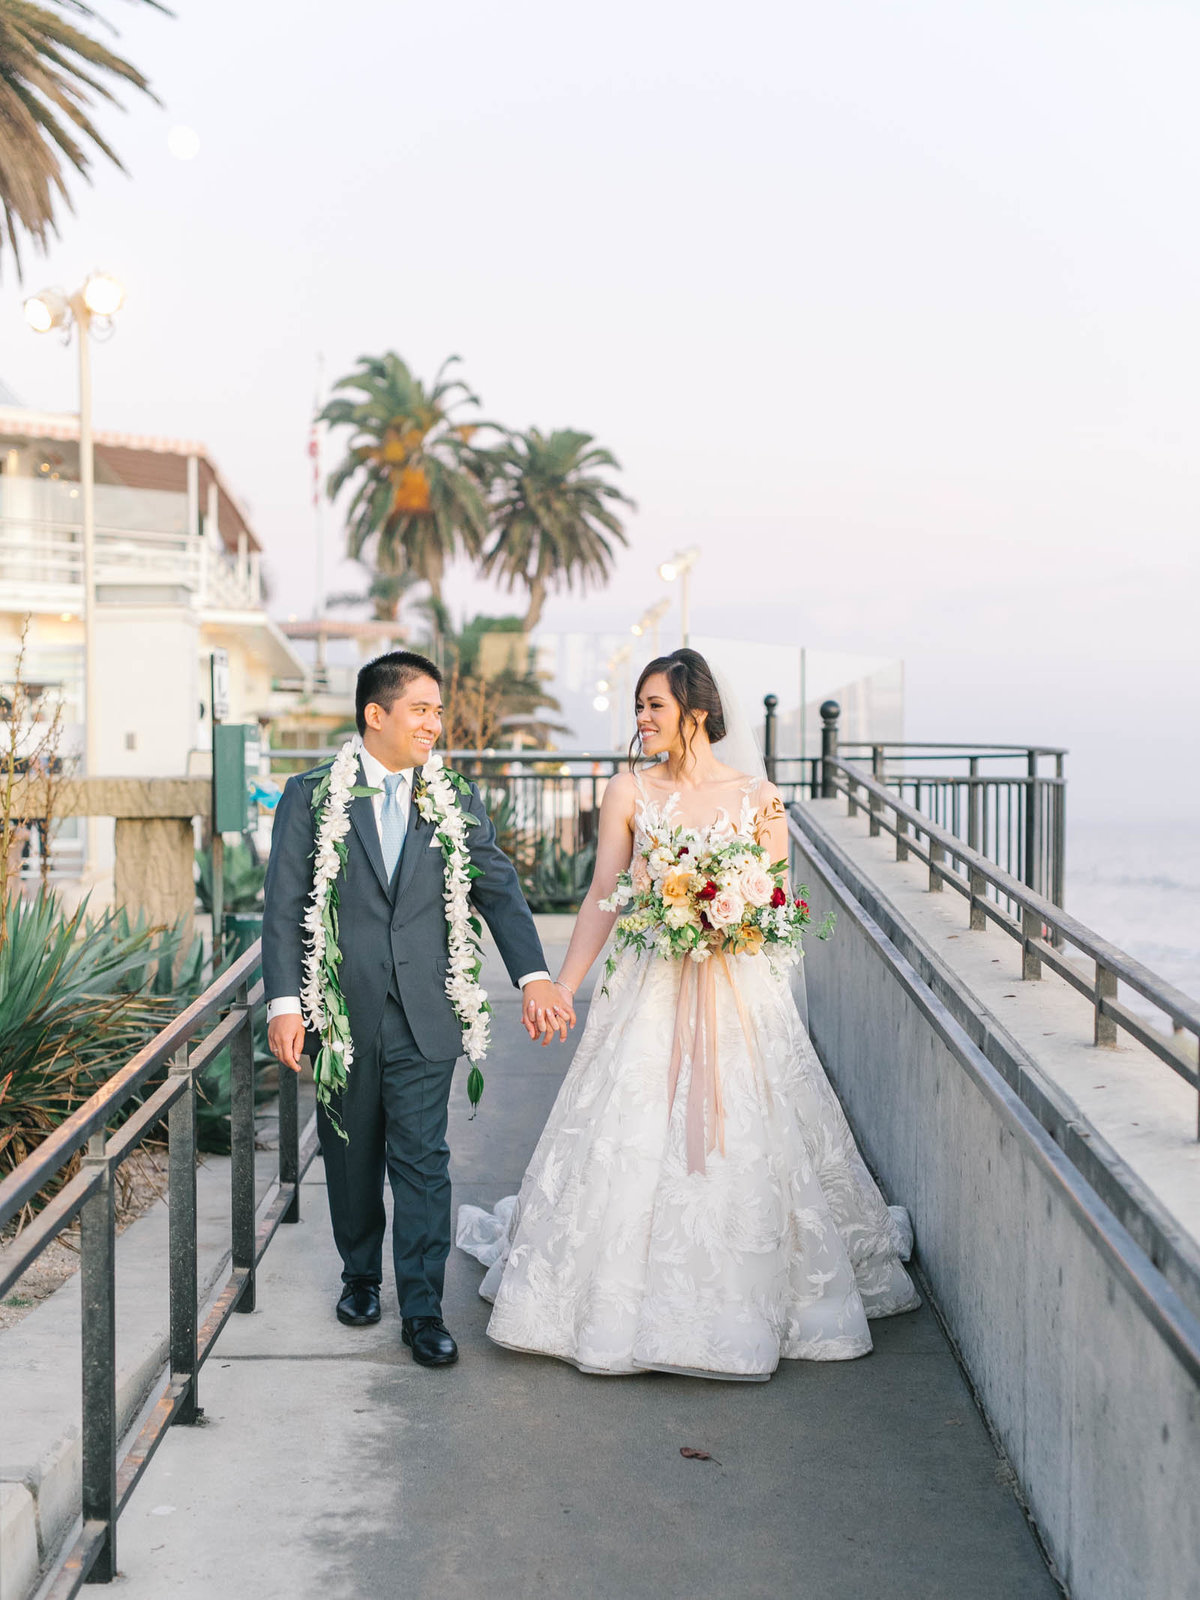 four-seasons-biltmore-santa-barbara-wedding-120